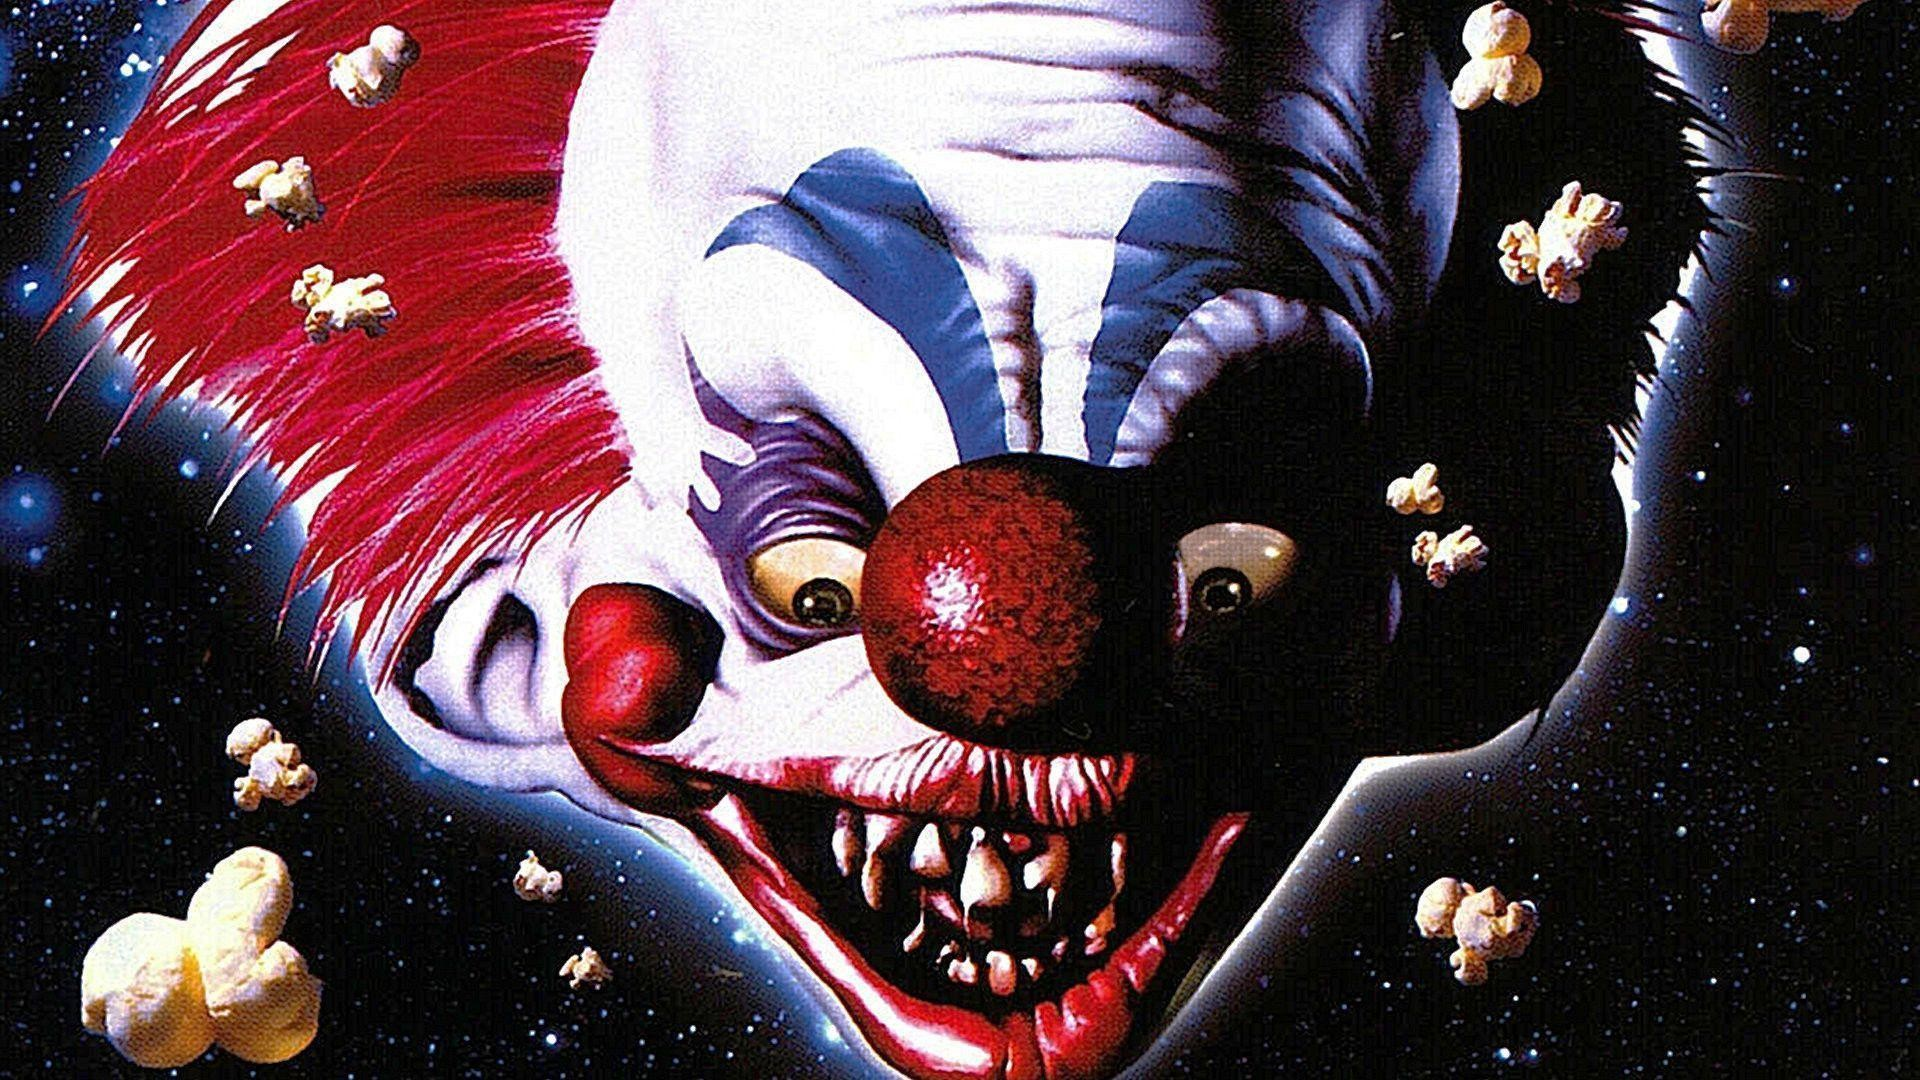 Scary Clown Wallpaper Screensavers (61+ Images